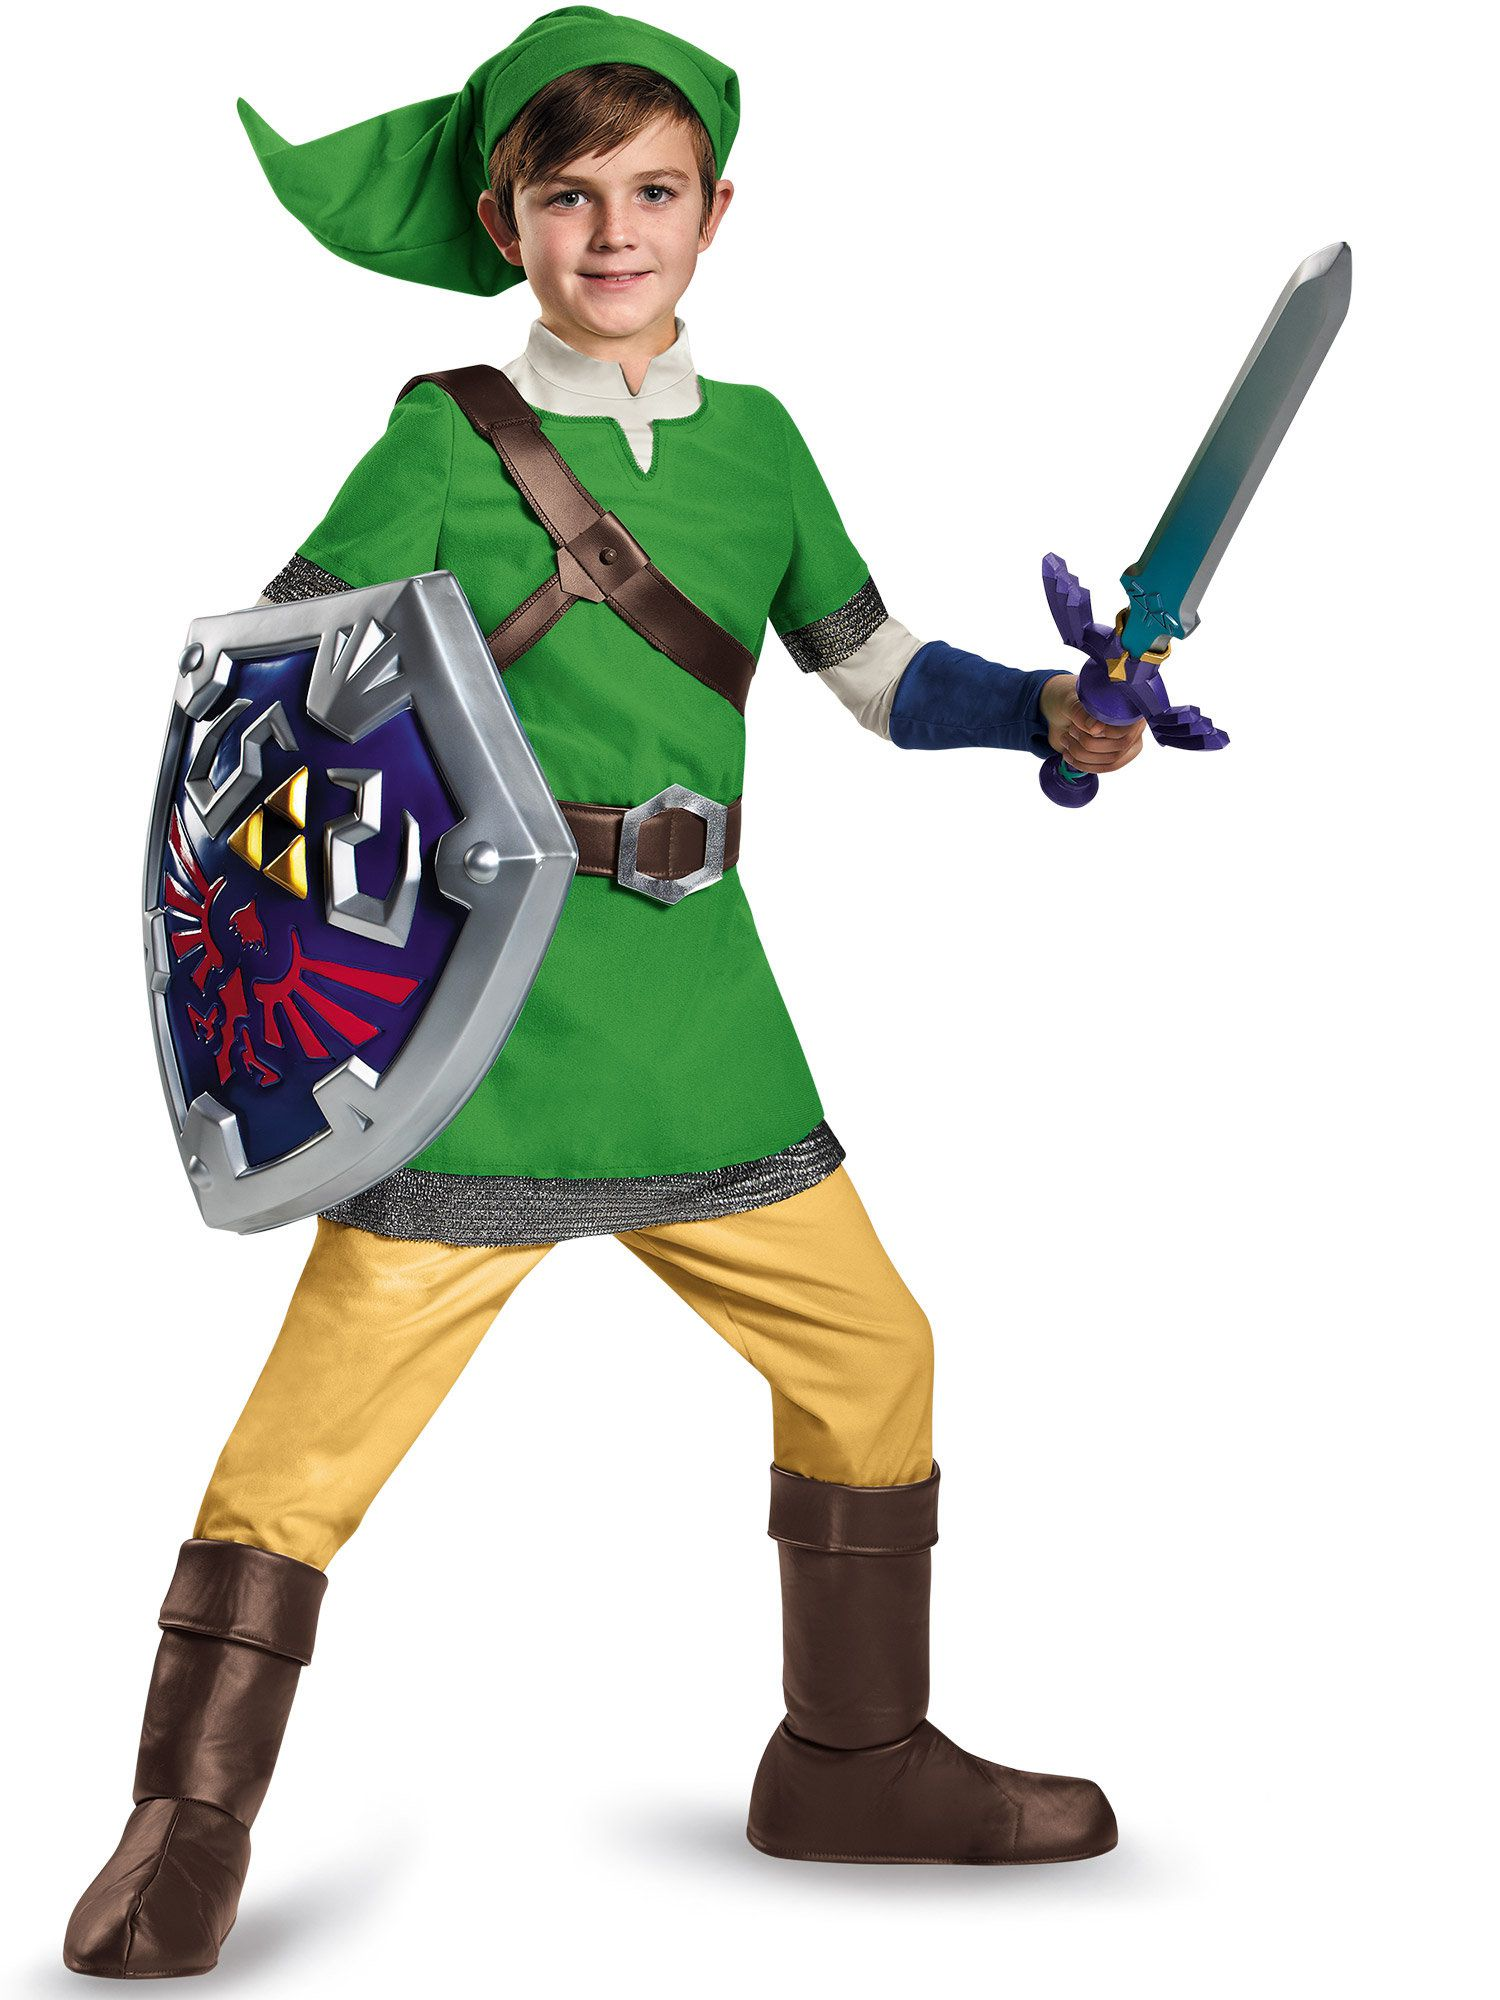 Legend Of Zelda Link Deluxe Boys Costume  sc 1 st  Wholesale Halloween Costumes & Legend Of Zelda Link Deluxe Boys Costume - Boys Costumes for 2018 ...